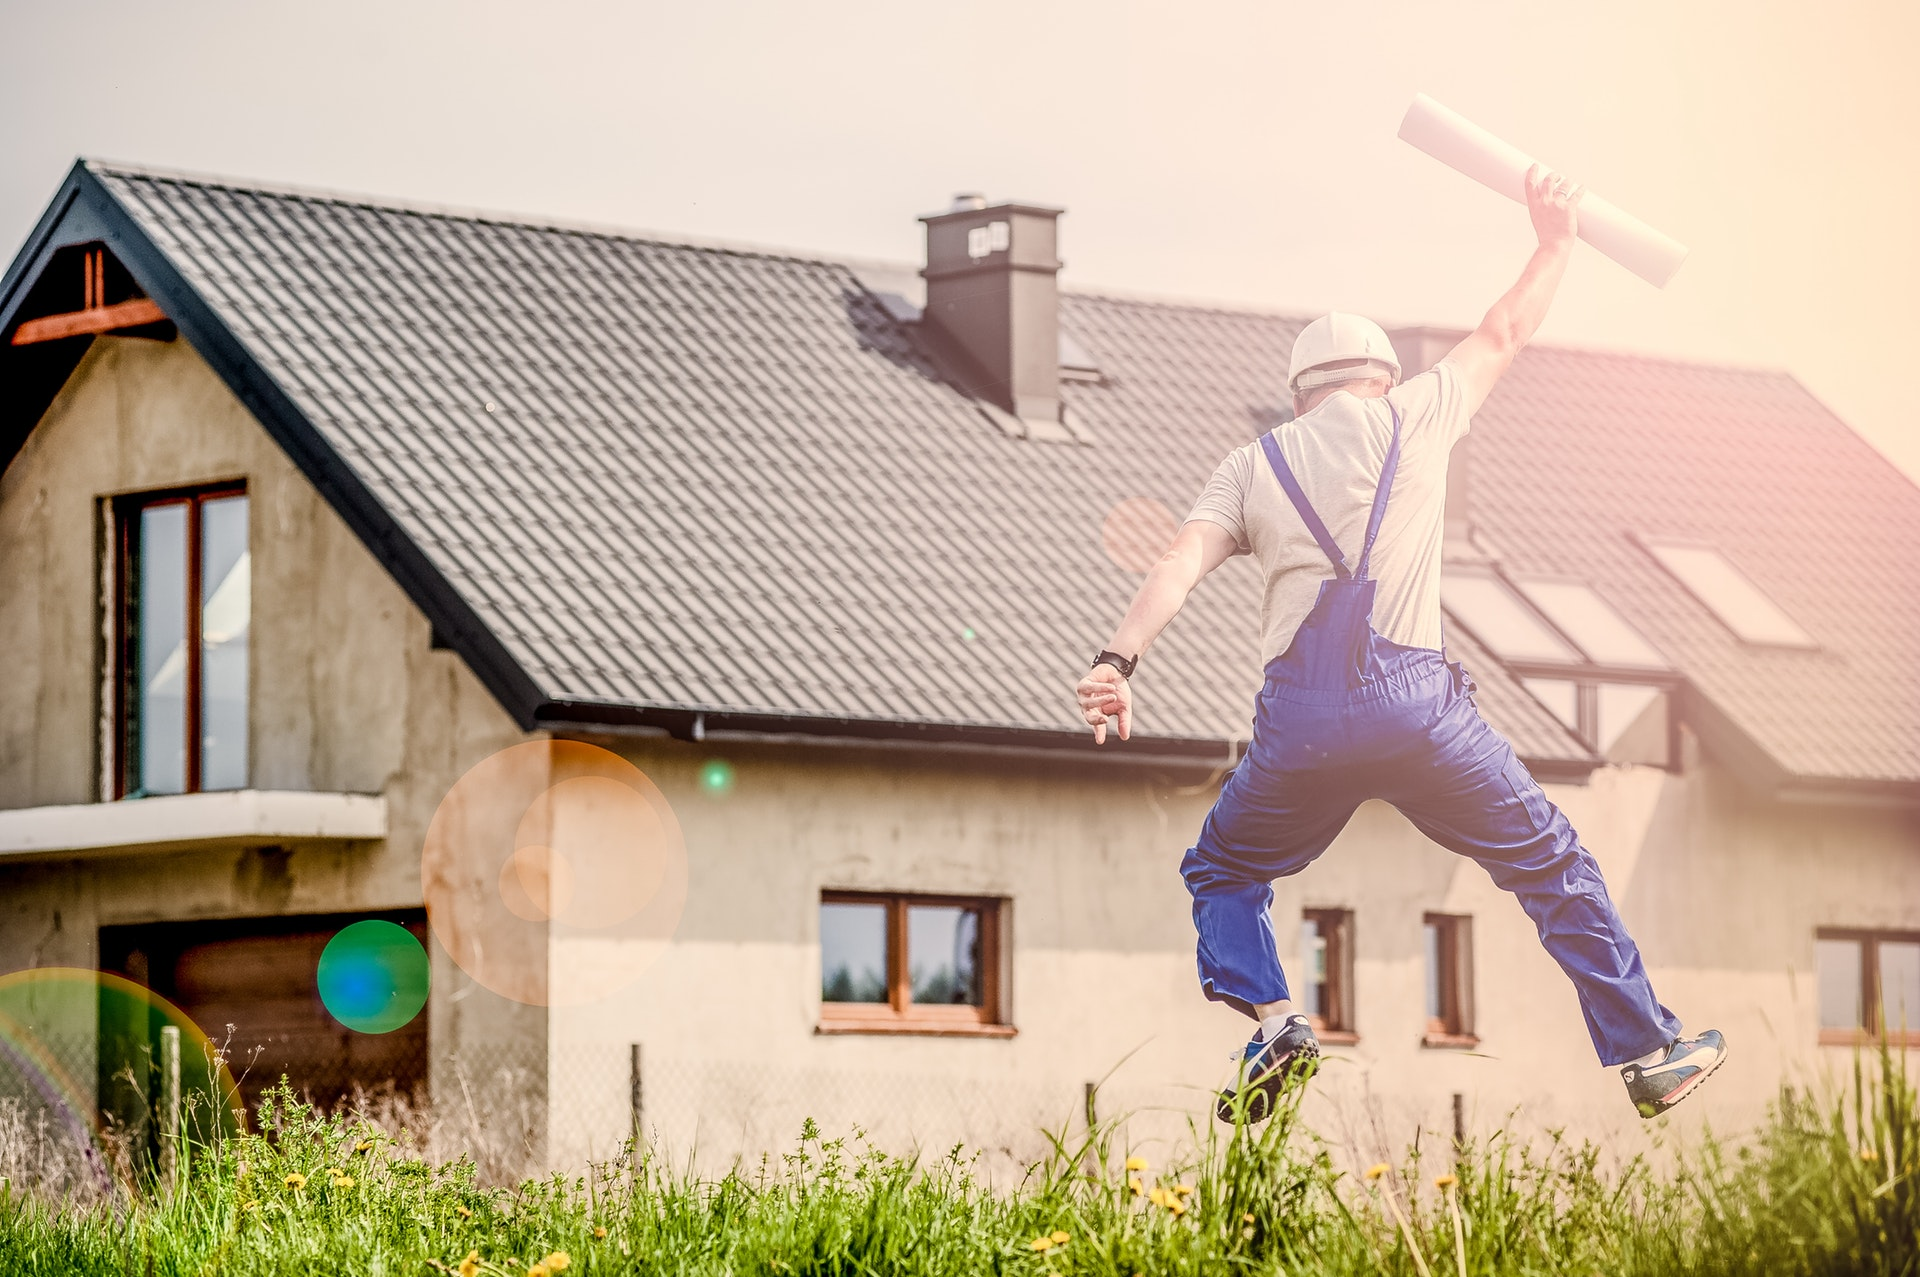 Real Estate Purchase Fees in Germany